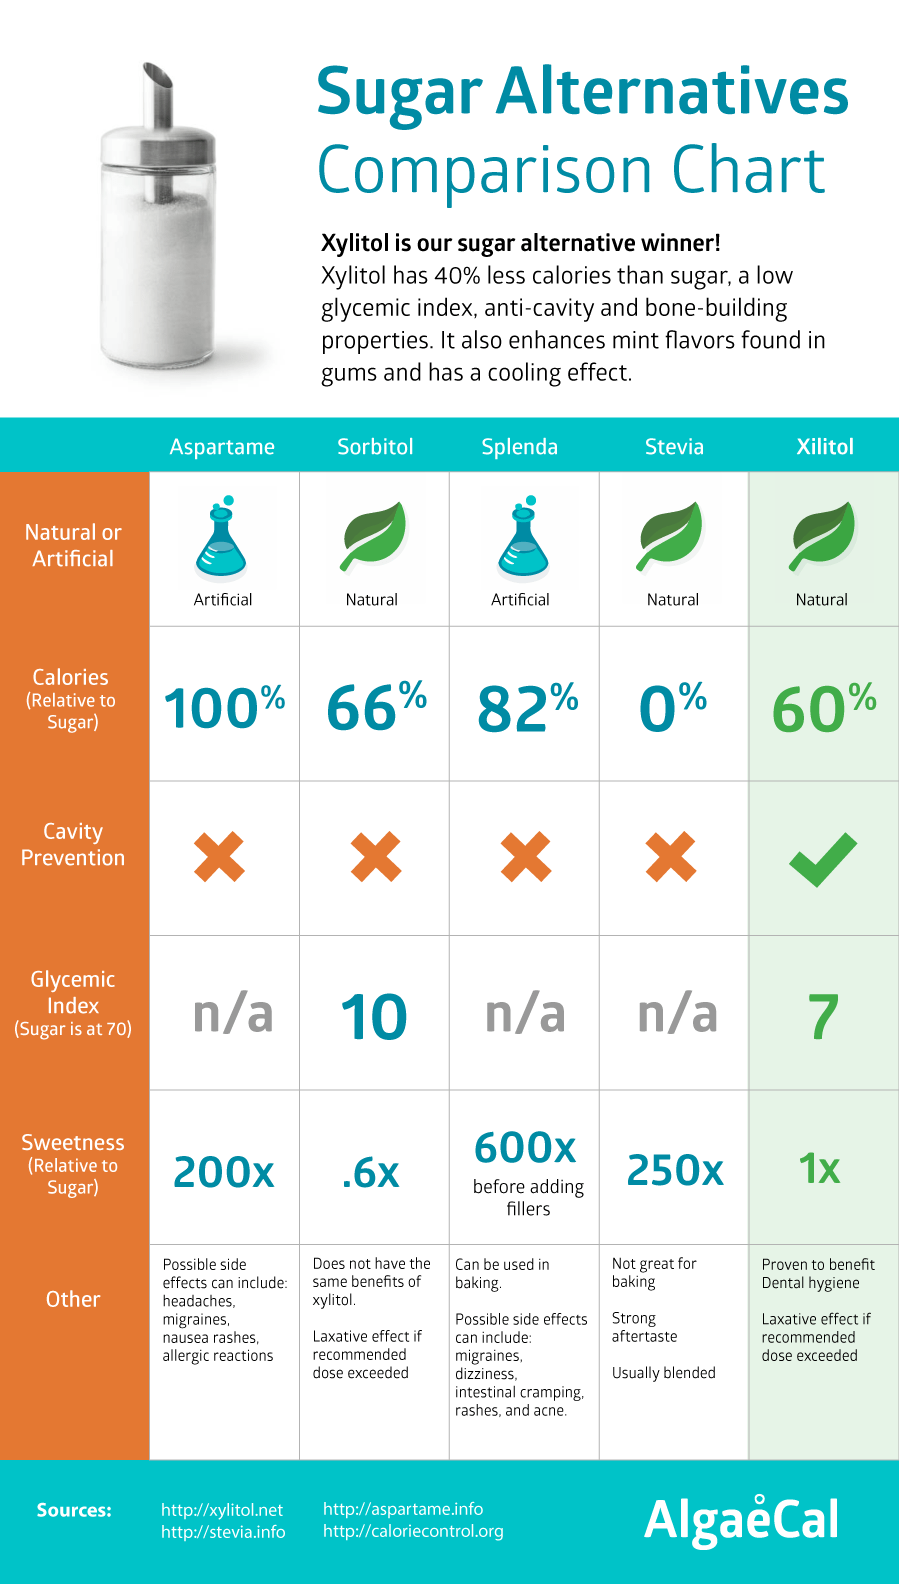 xylitol sugar comparisons chart